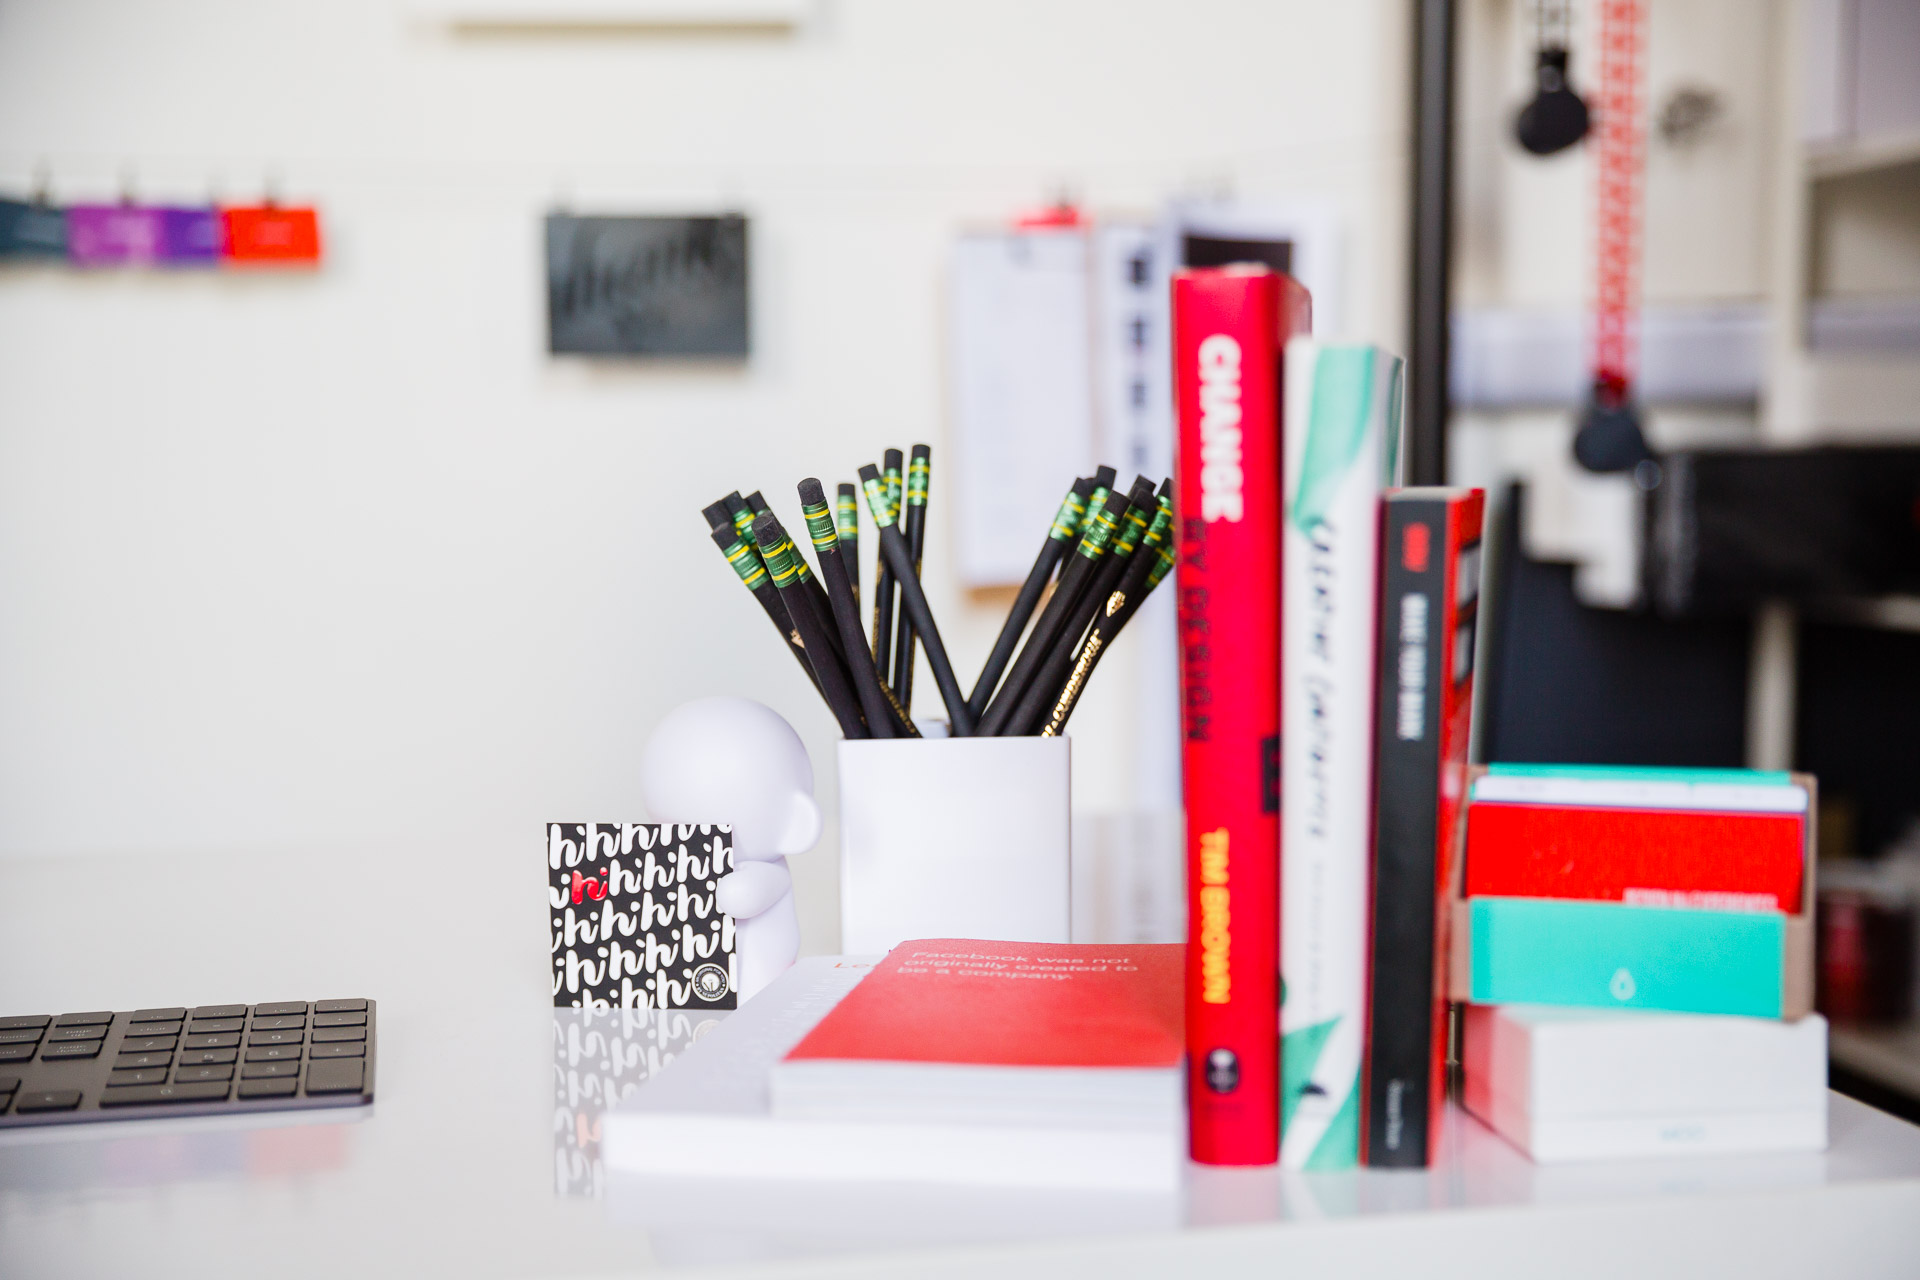 Design books, a cup of pencils, business cards, and a white munny figurine holding a hi card sitting on a desk